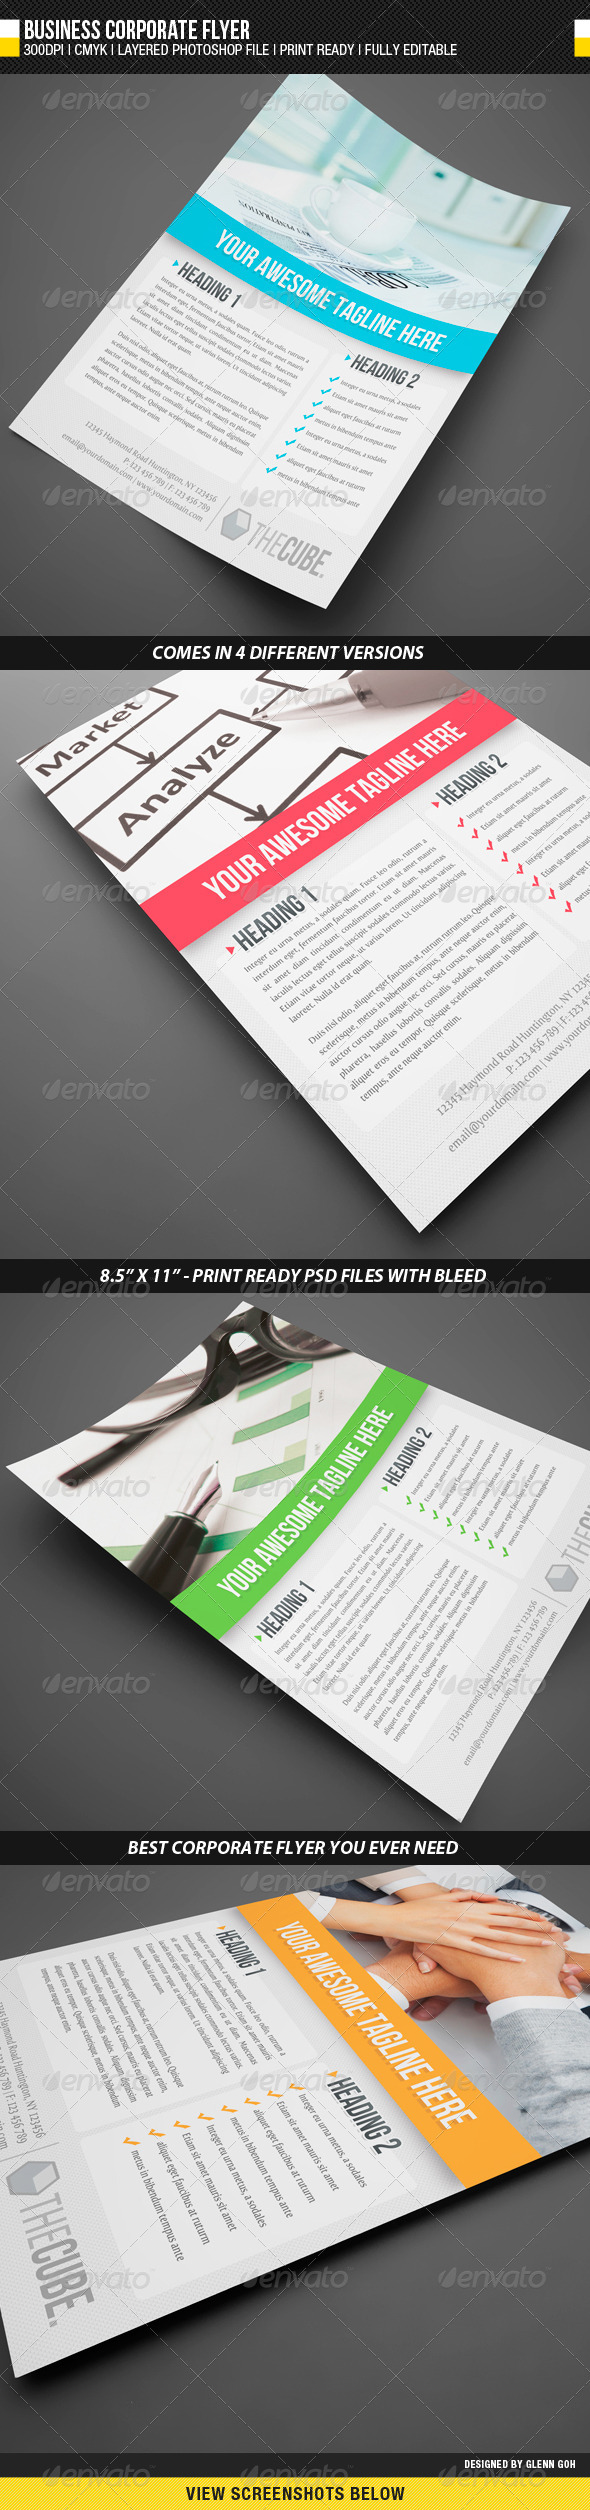 GraphicRiver Business Corporate Flyer 1685844